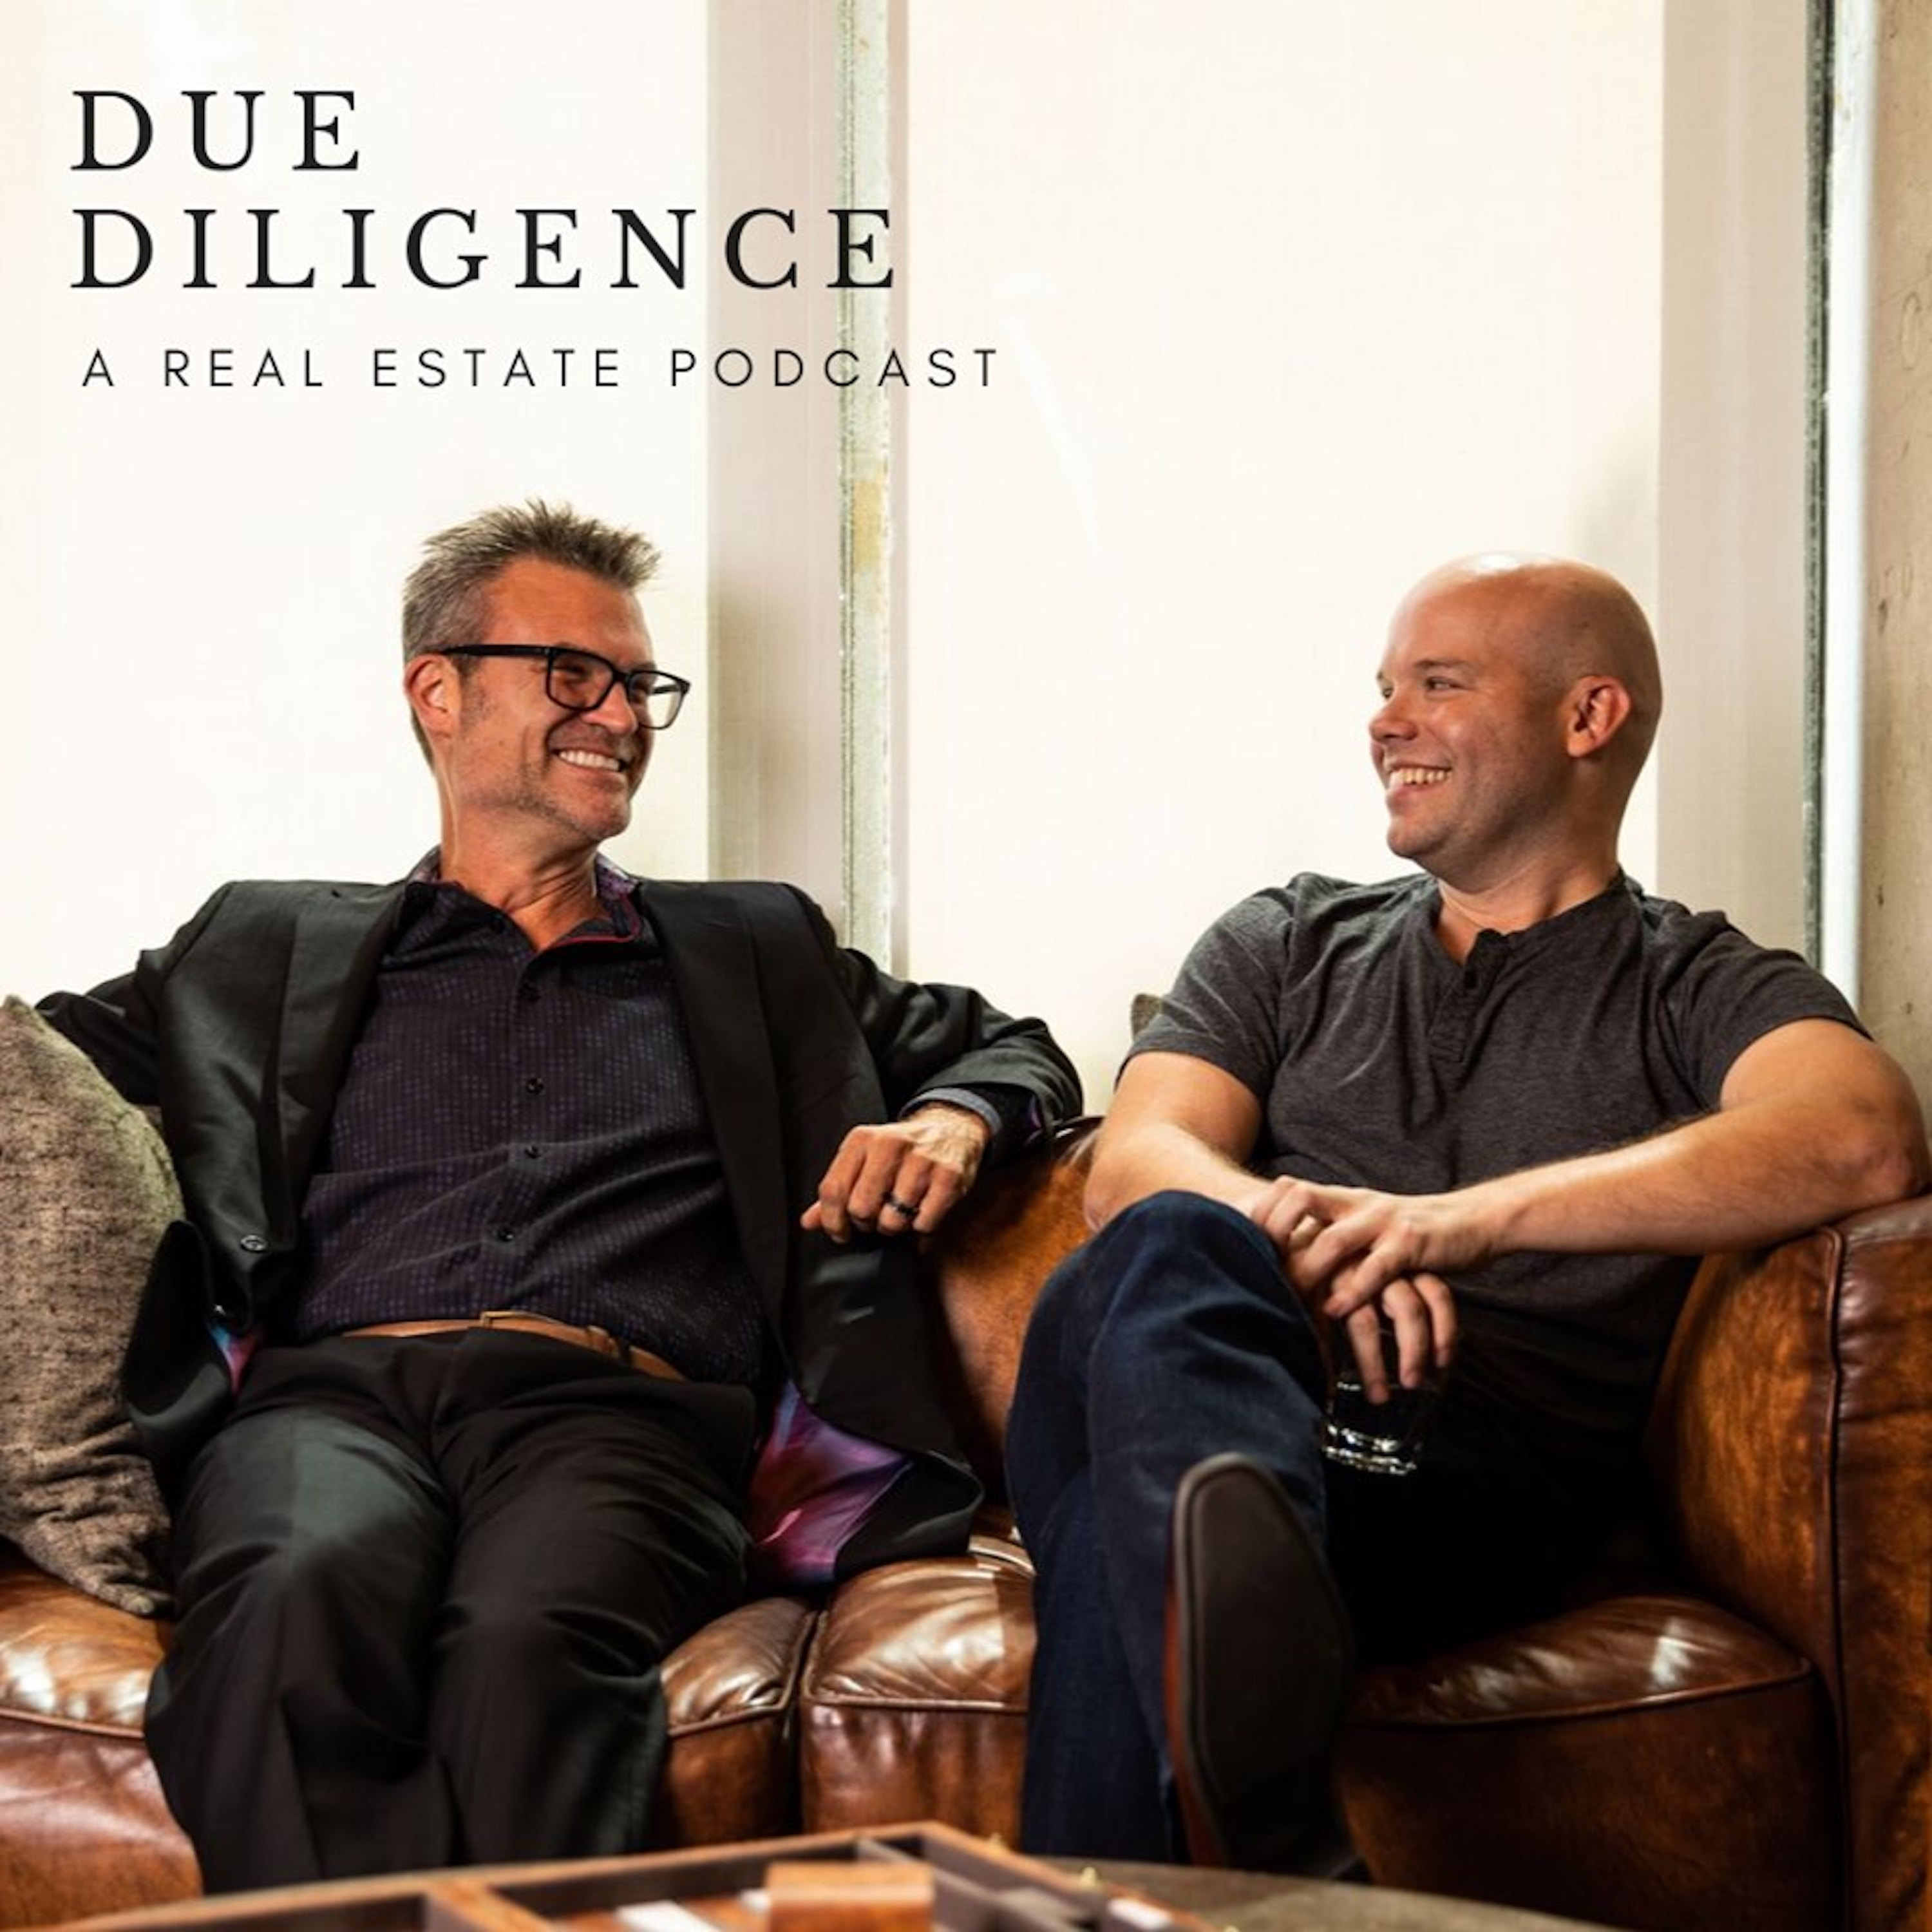 Due Diligence: A Real Estate Podcast